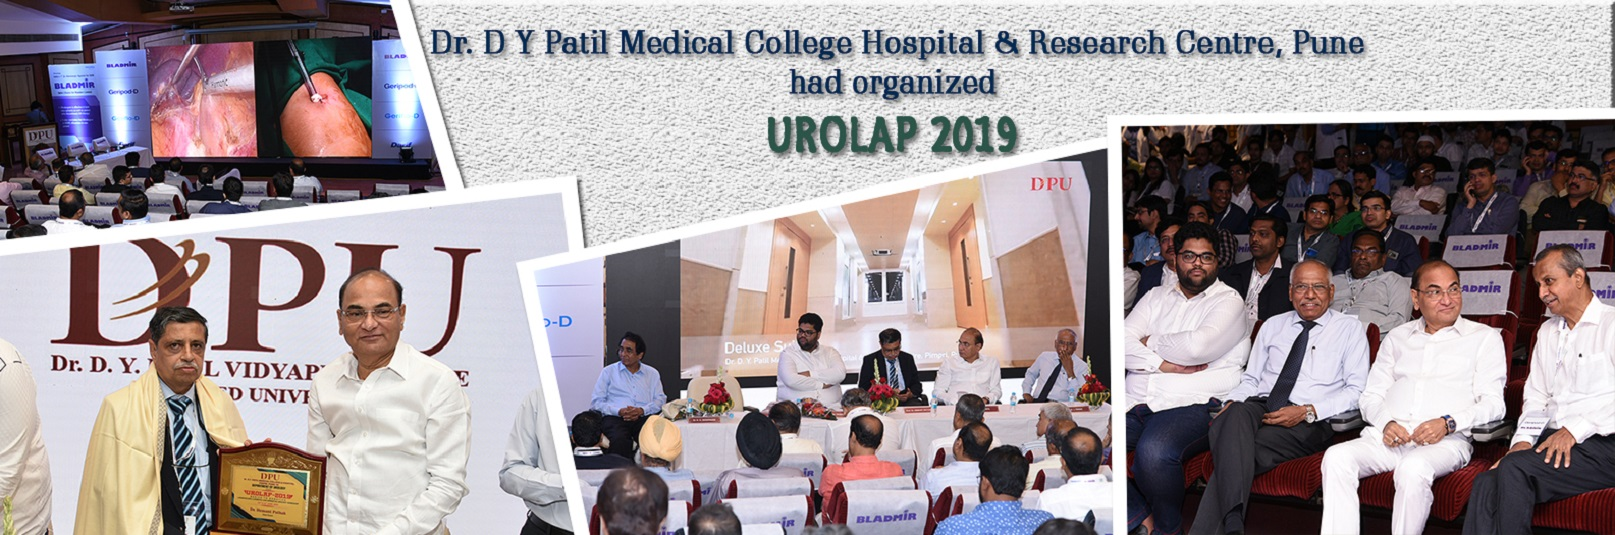 UROLAP-2019, Dr. D. Y. Patil Hospital & Research Centre